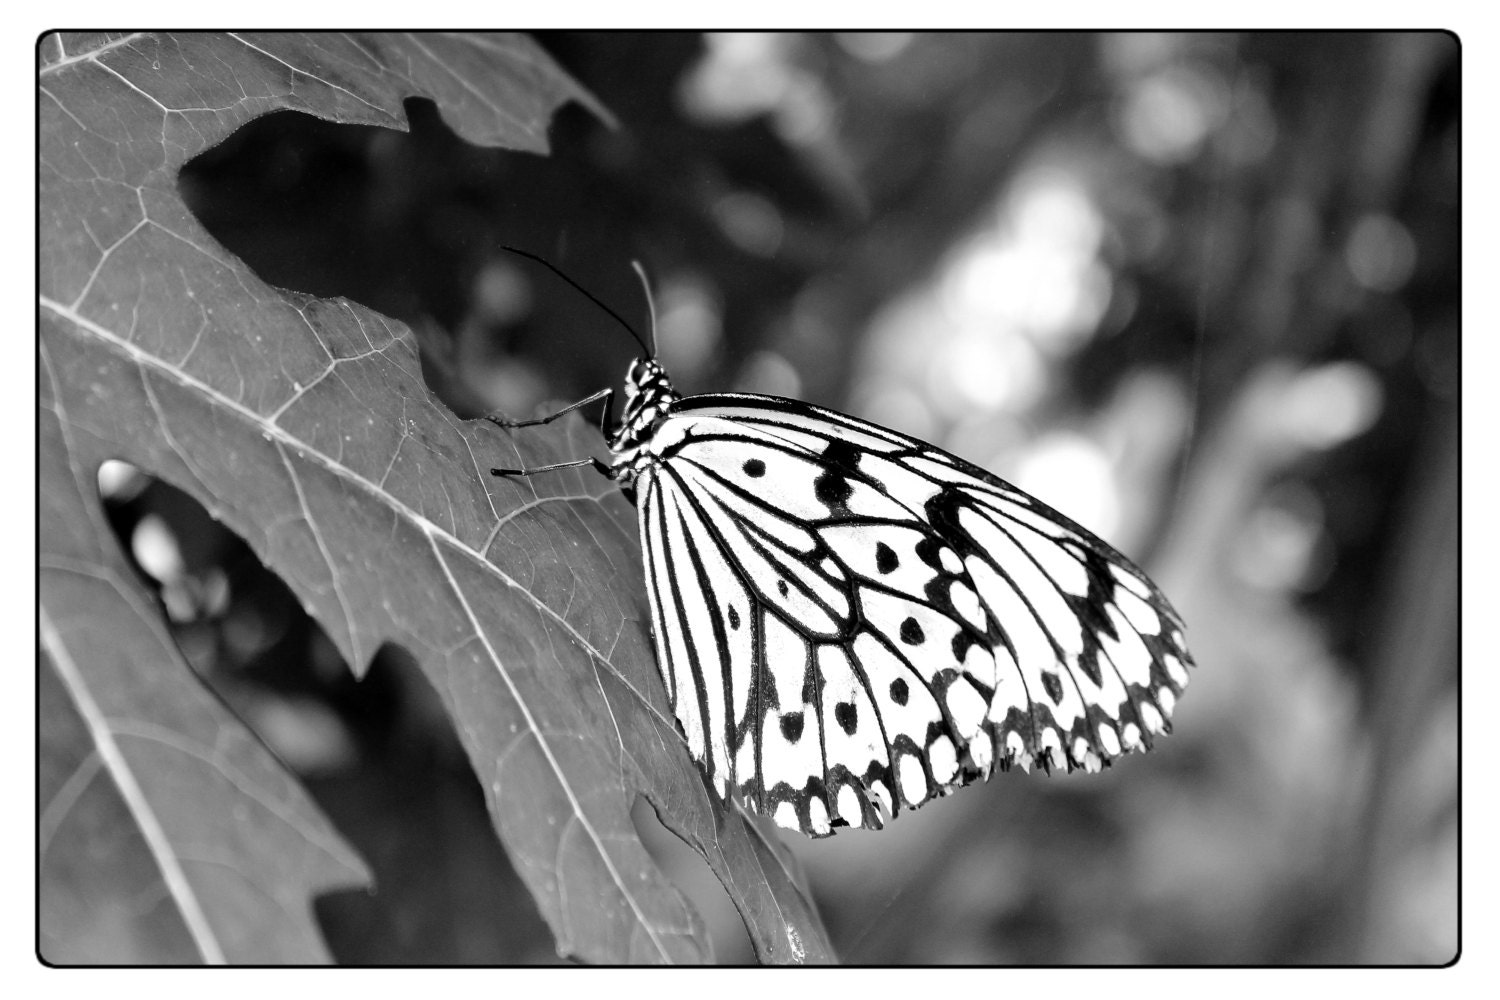 Black white nature photography butterfly photo high contrast original photography close up insect photography butterflies insects